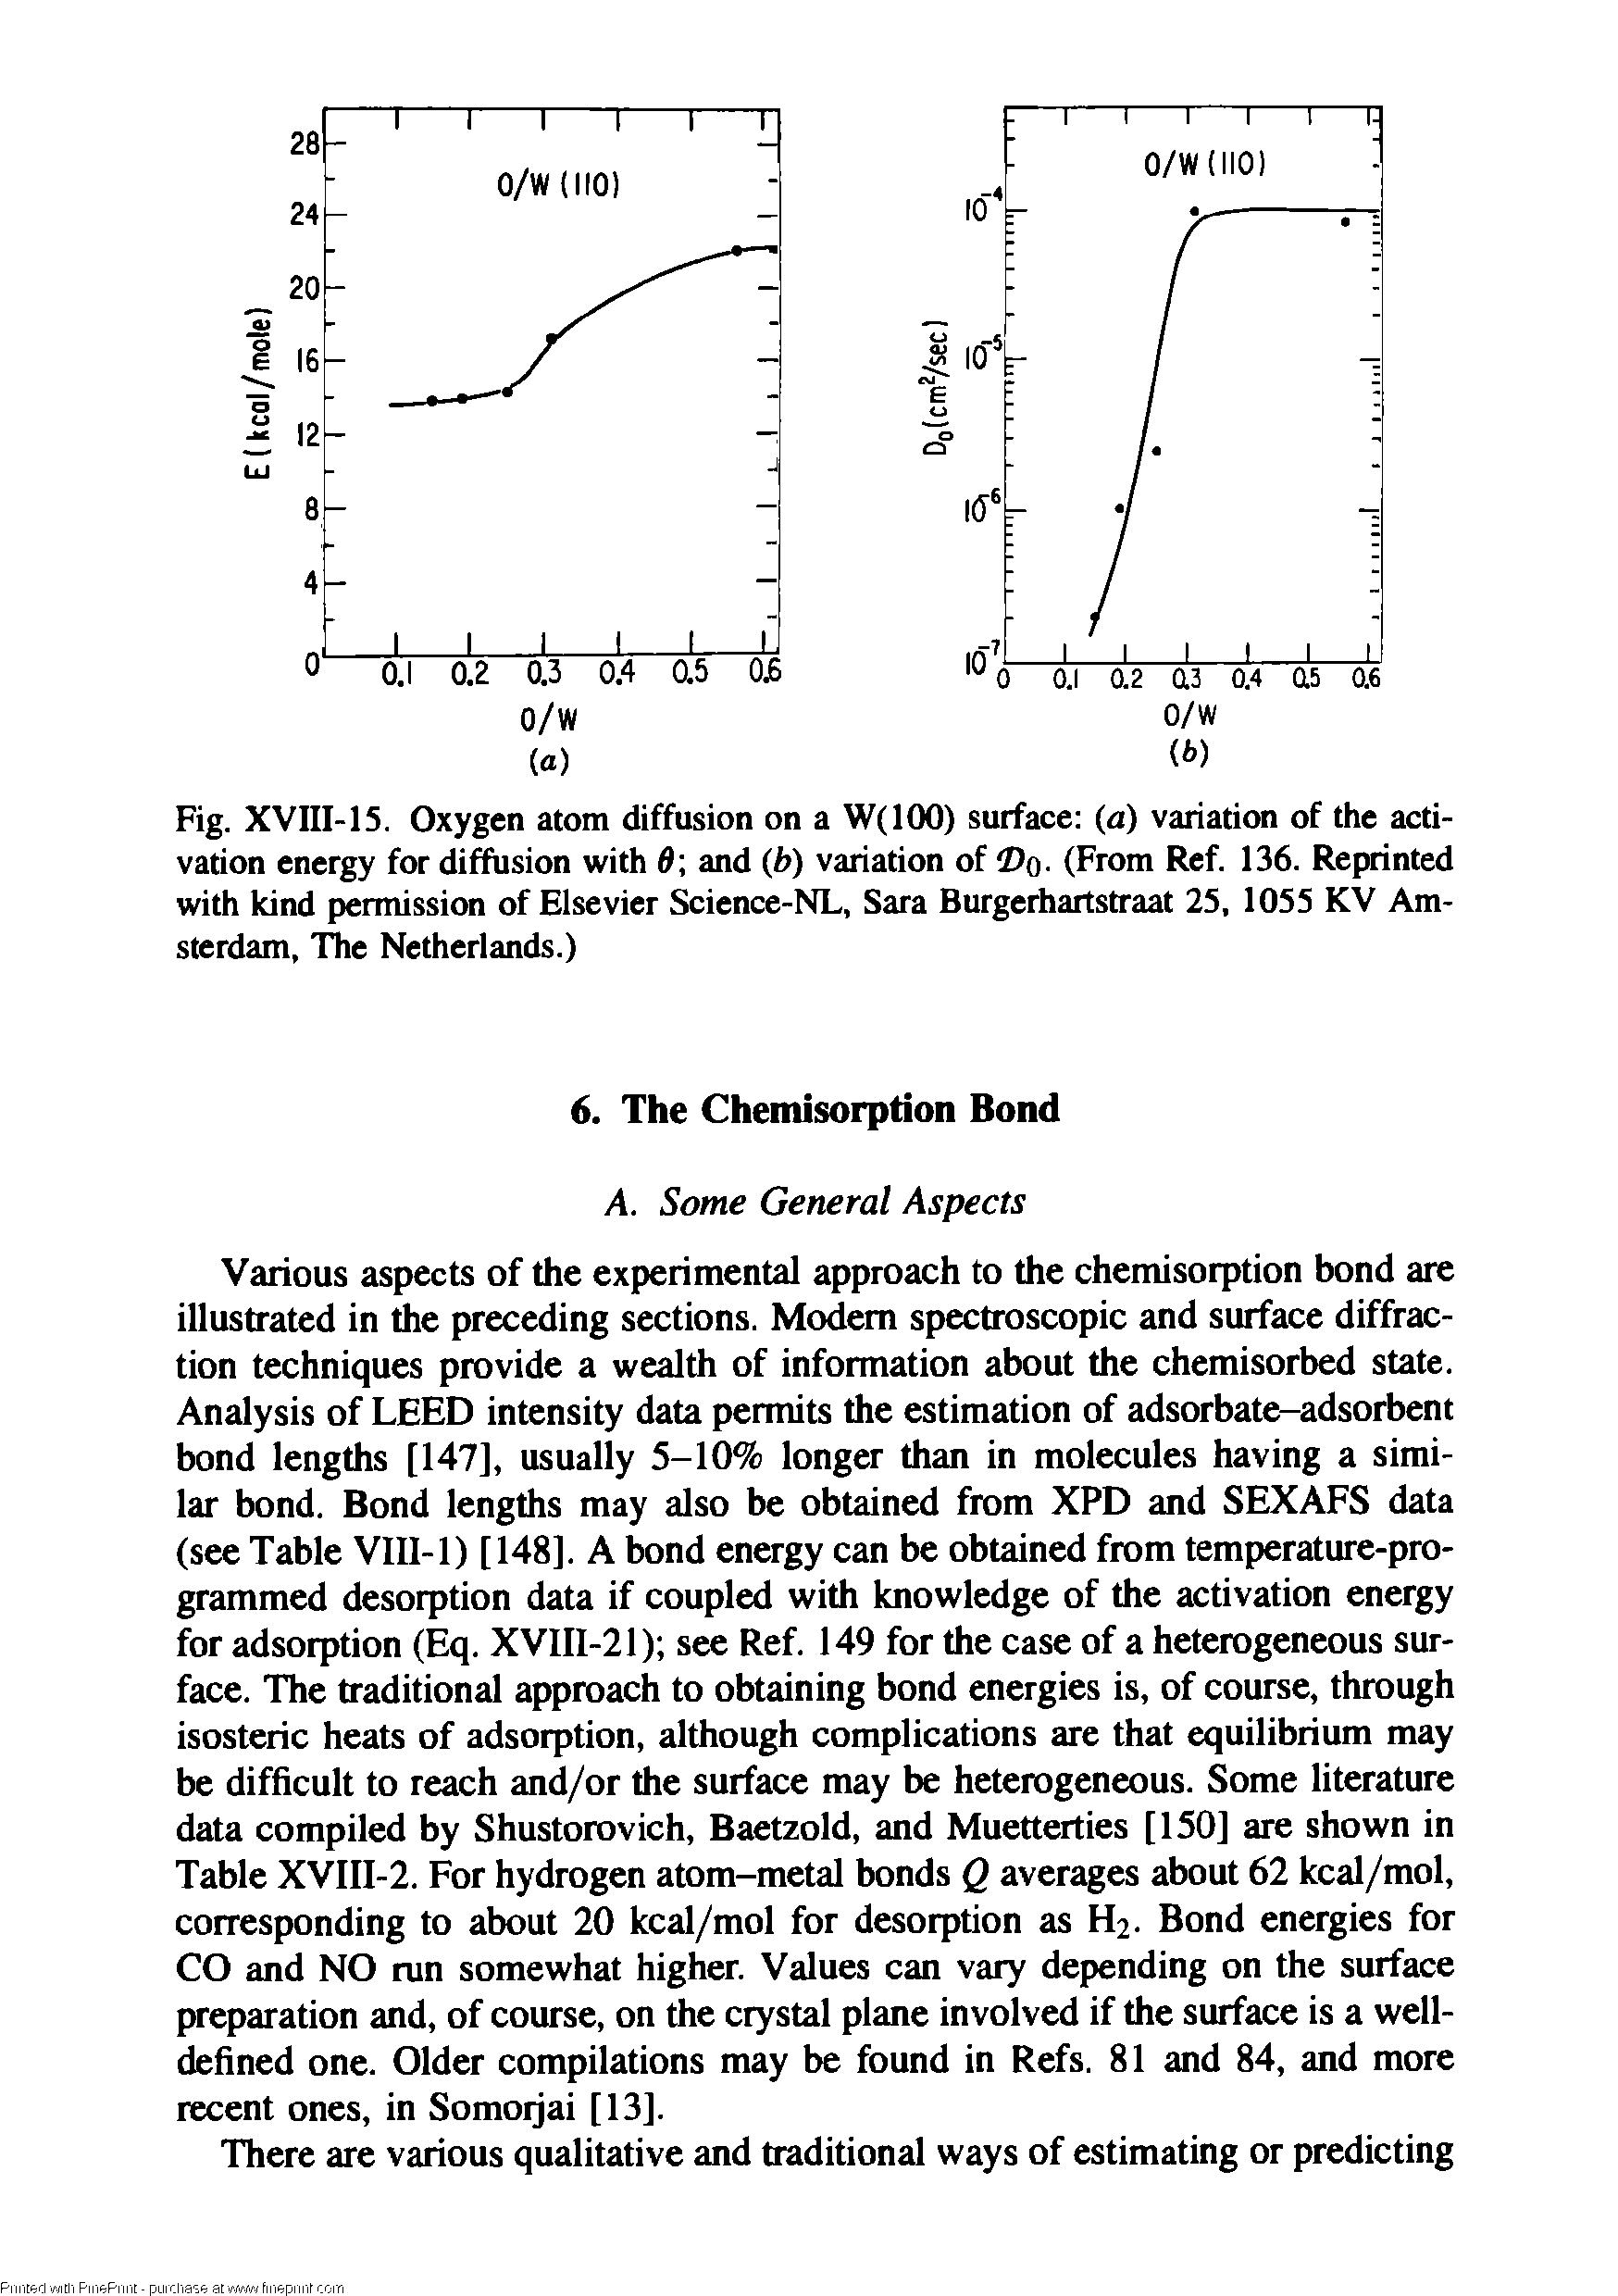 Fig. XVIII-15. Oxygen atom diffusion on a W(IOO) surface (a) variation of the activation energy for diffusion with d and (b) variation of o- (From Ref. 136. Reprinted with kind permission of Elsevier Science-NL, Sara Burgerhartstraat 25, 1055 KV Amsterdam, The Netherlands.)...